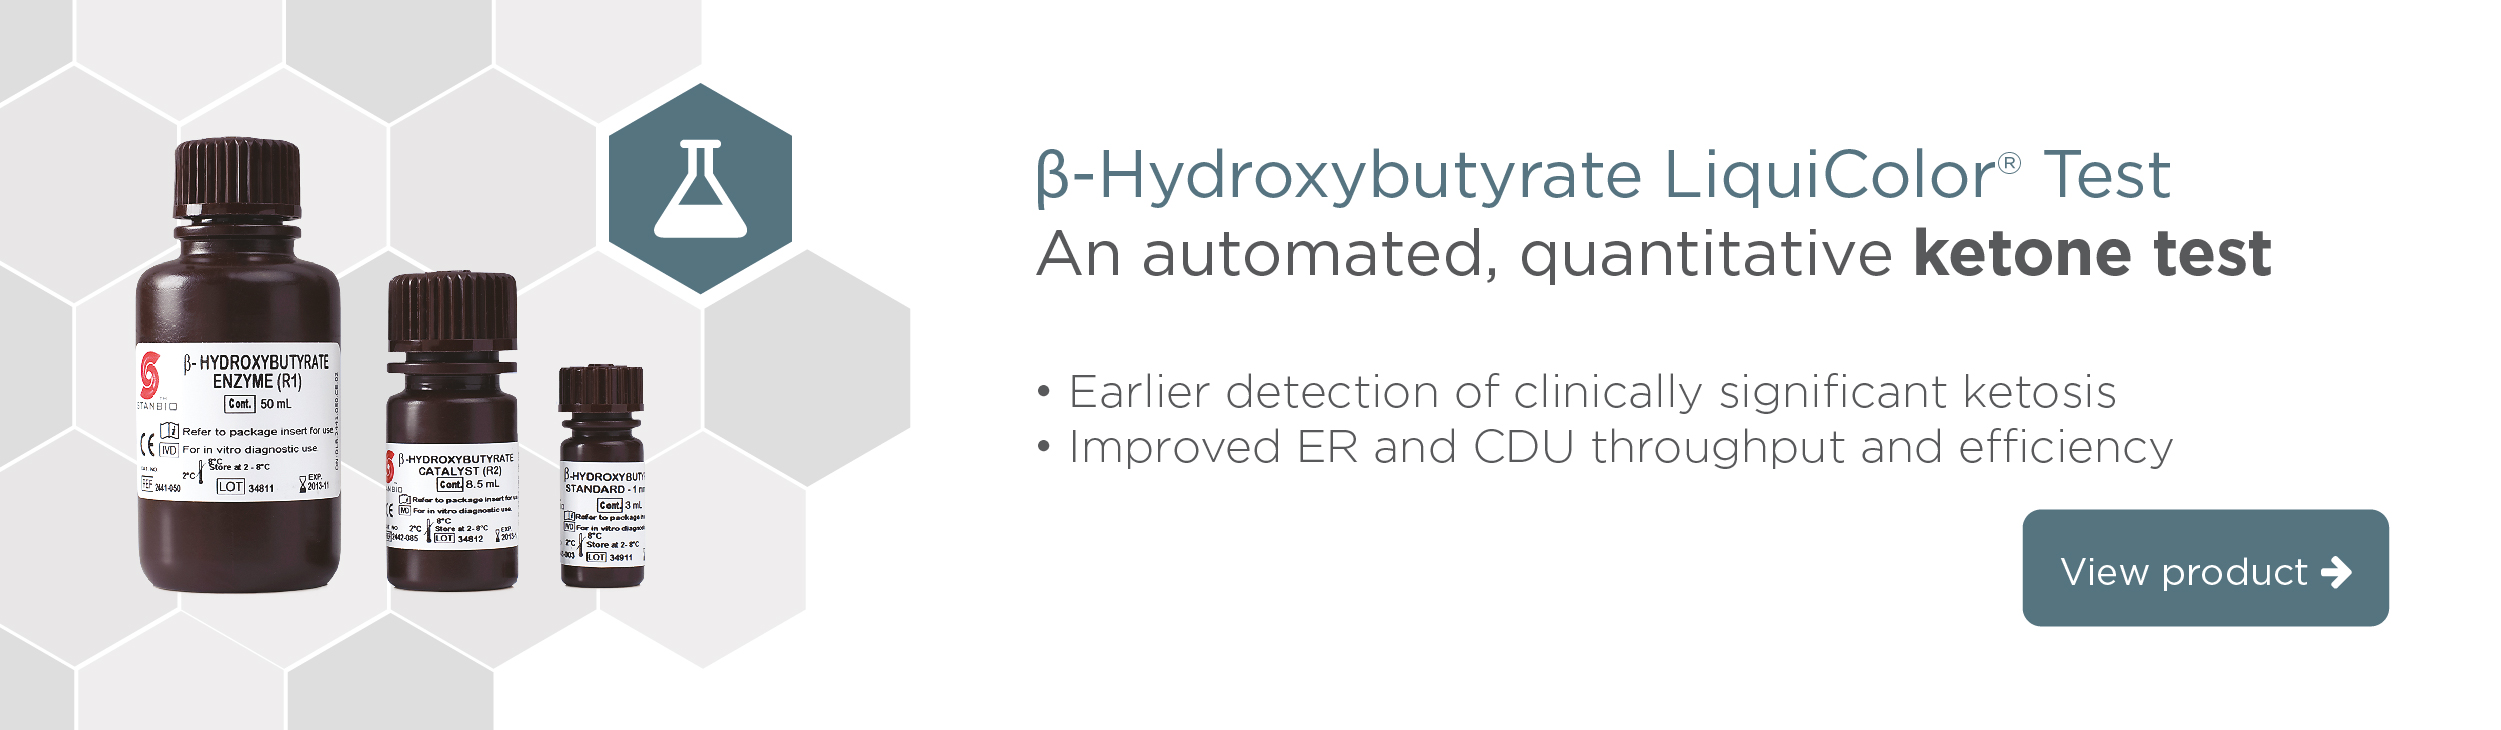 Beta-Hydroxybutyrate-Reagent-Ketone-test-banner